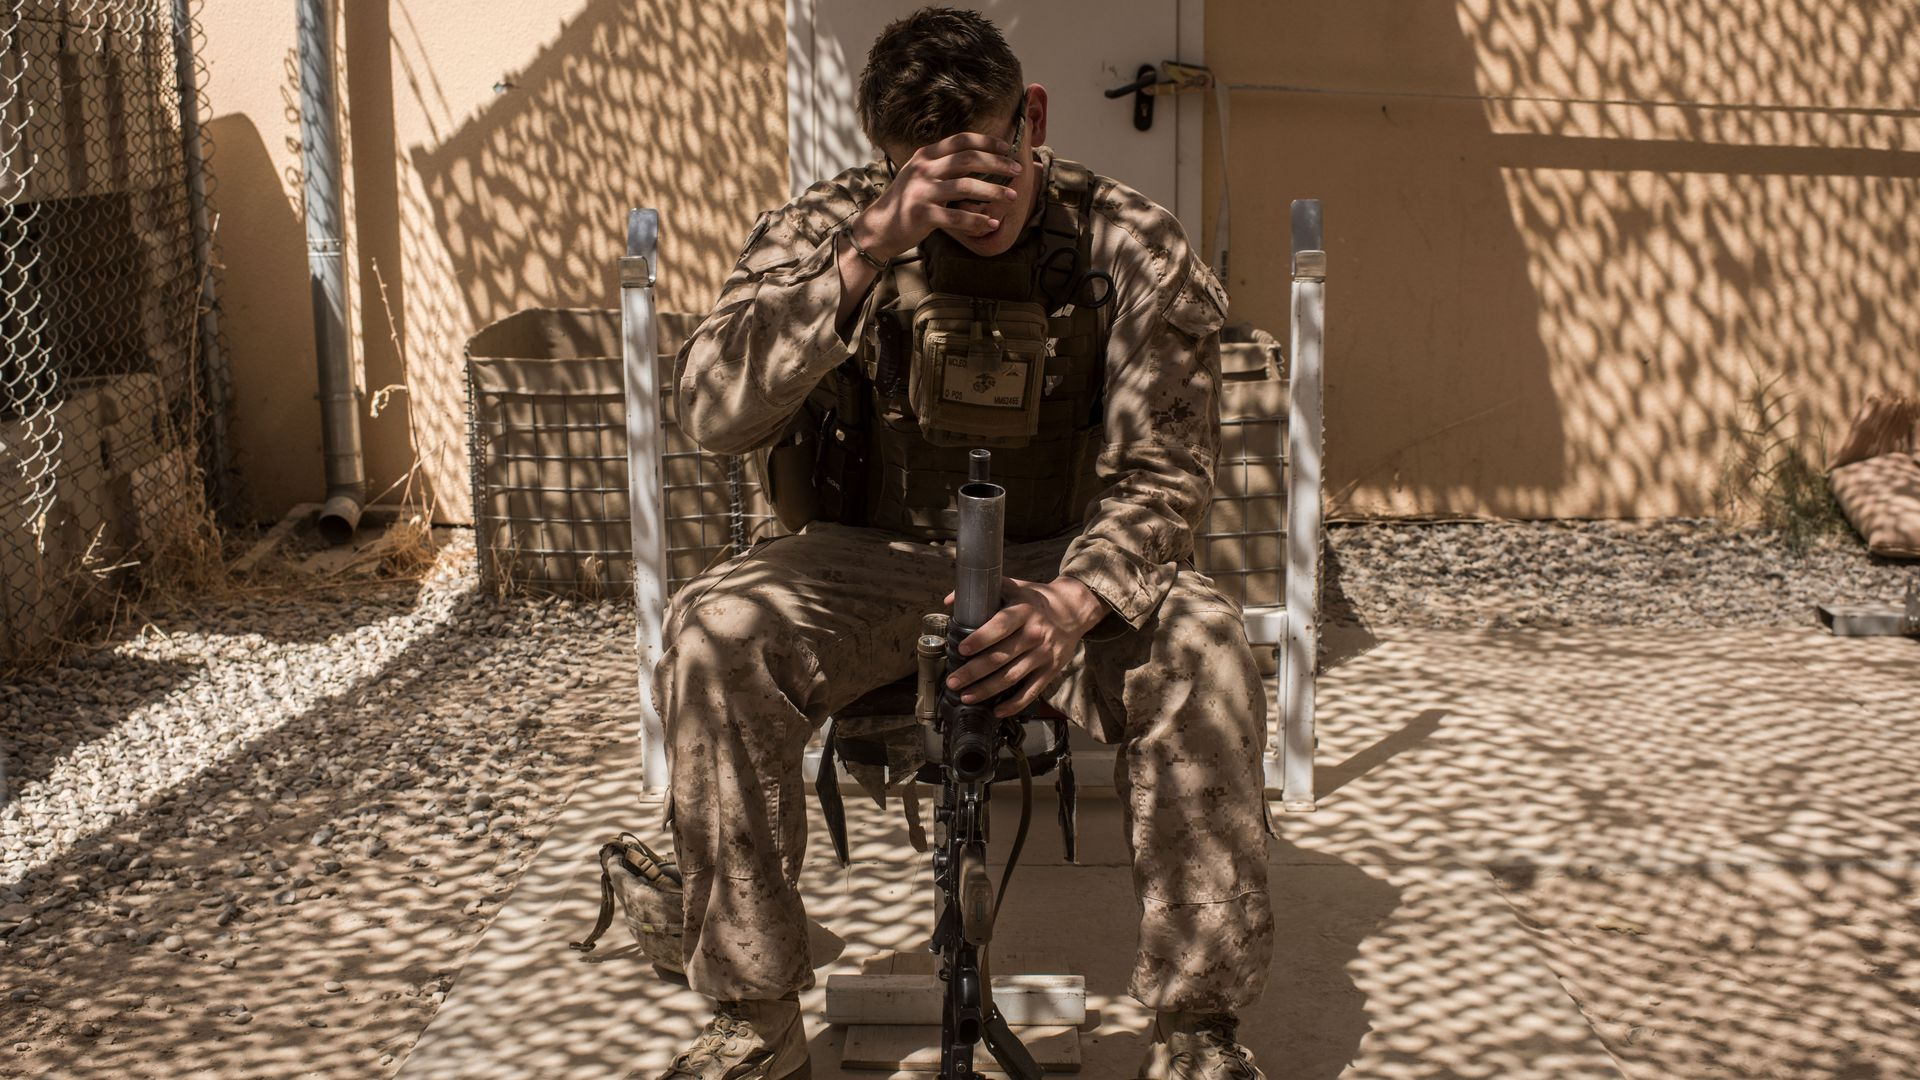 A U.S. soldier sits in a chair holding his gun.